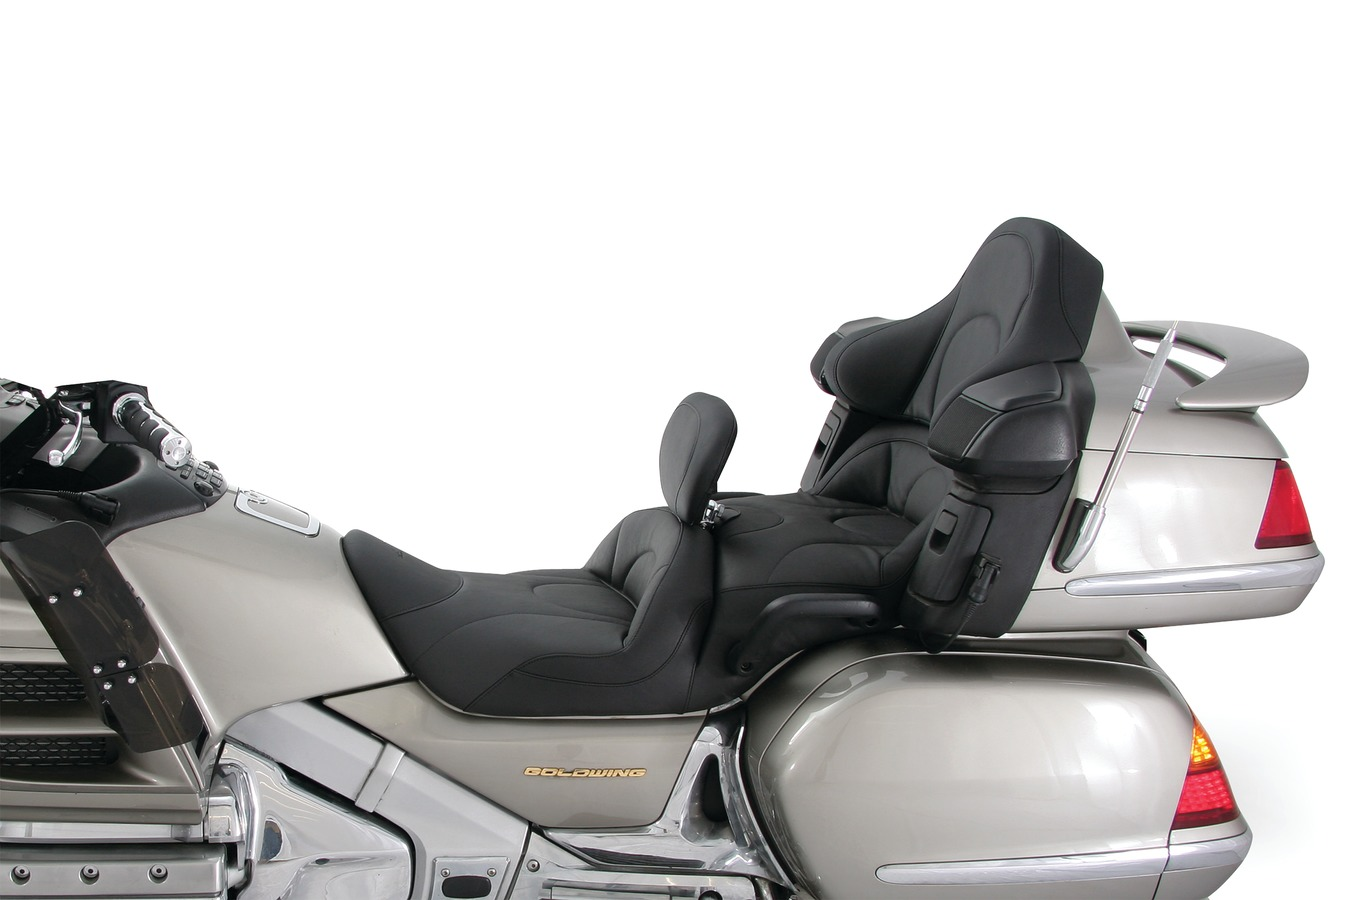 Standard Touring One-Piece Seat with Heat for Honda Gold Wing GL1800 2001-'17, Original, Black